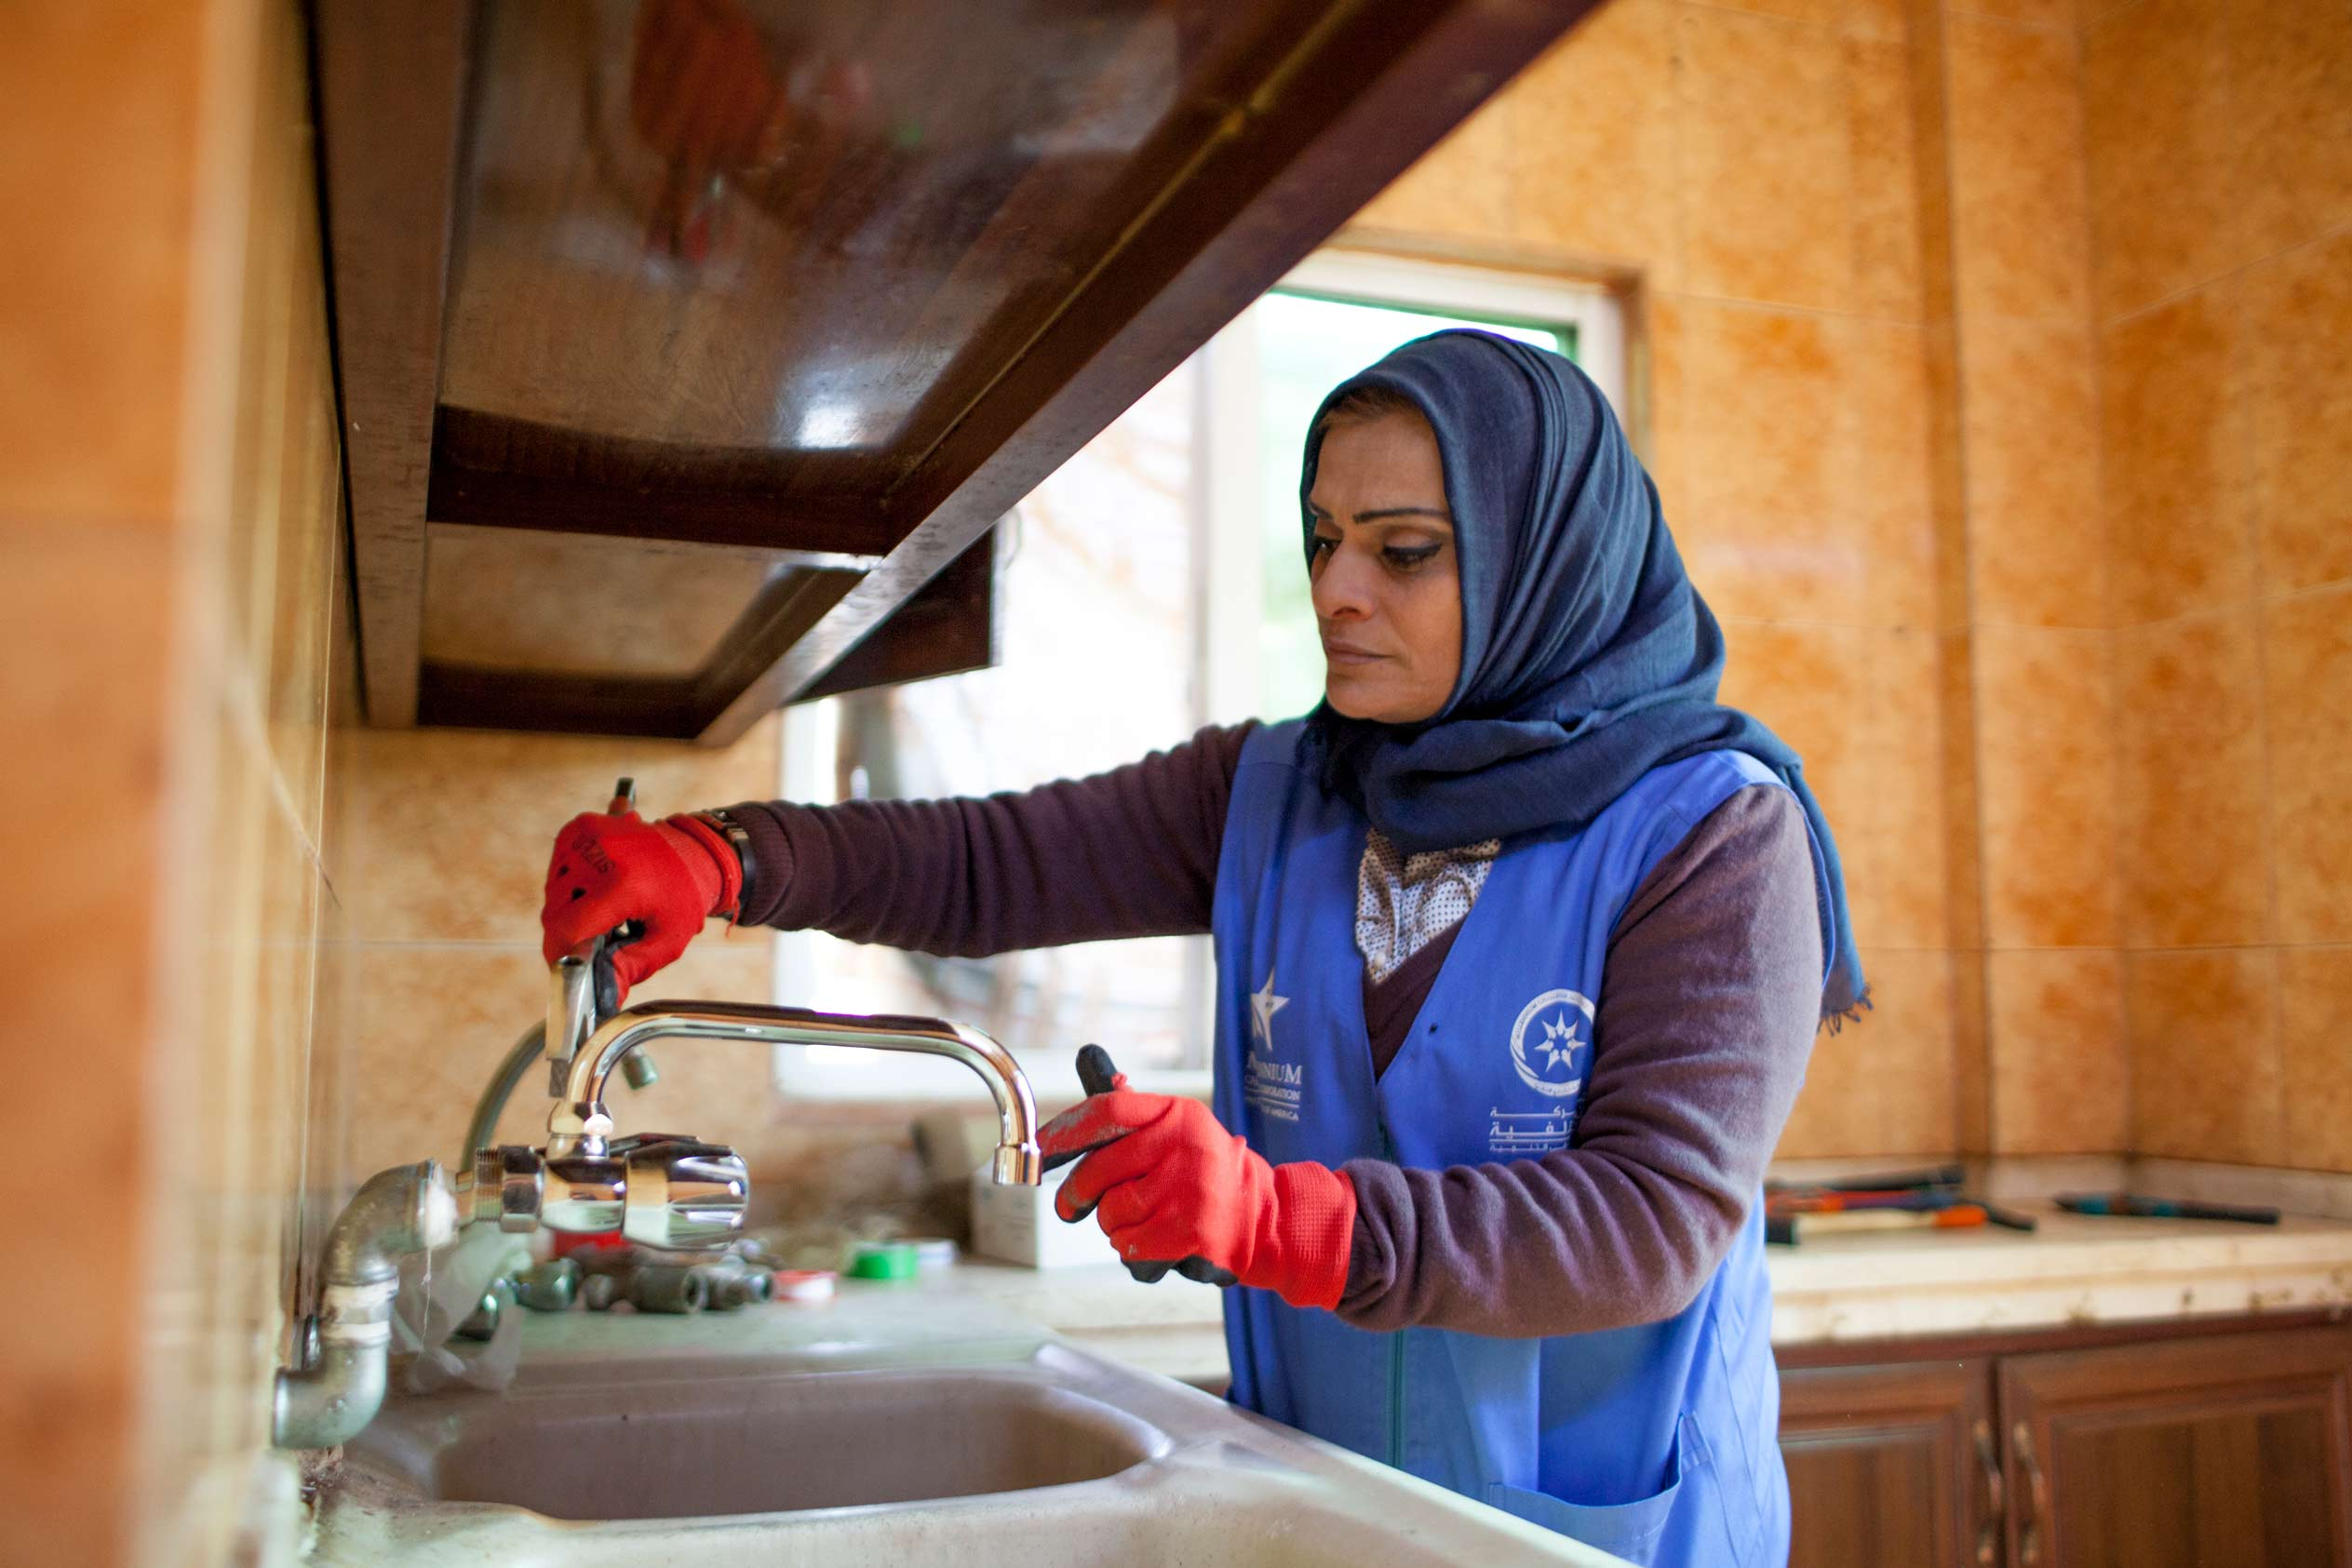 Photo: Ra'eda, pictured fixing a kitchen sink in Zarqa, Jordan, is one of 30 women who received training to become plumbers through a project that taught women how to effectively manage limited water resources in Zarqa, Jordan as part of MCC's Jordan Compact.